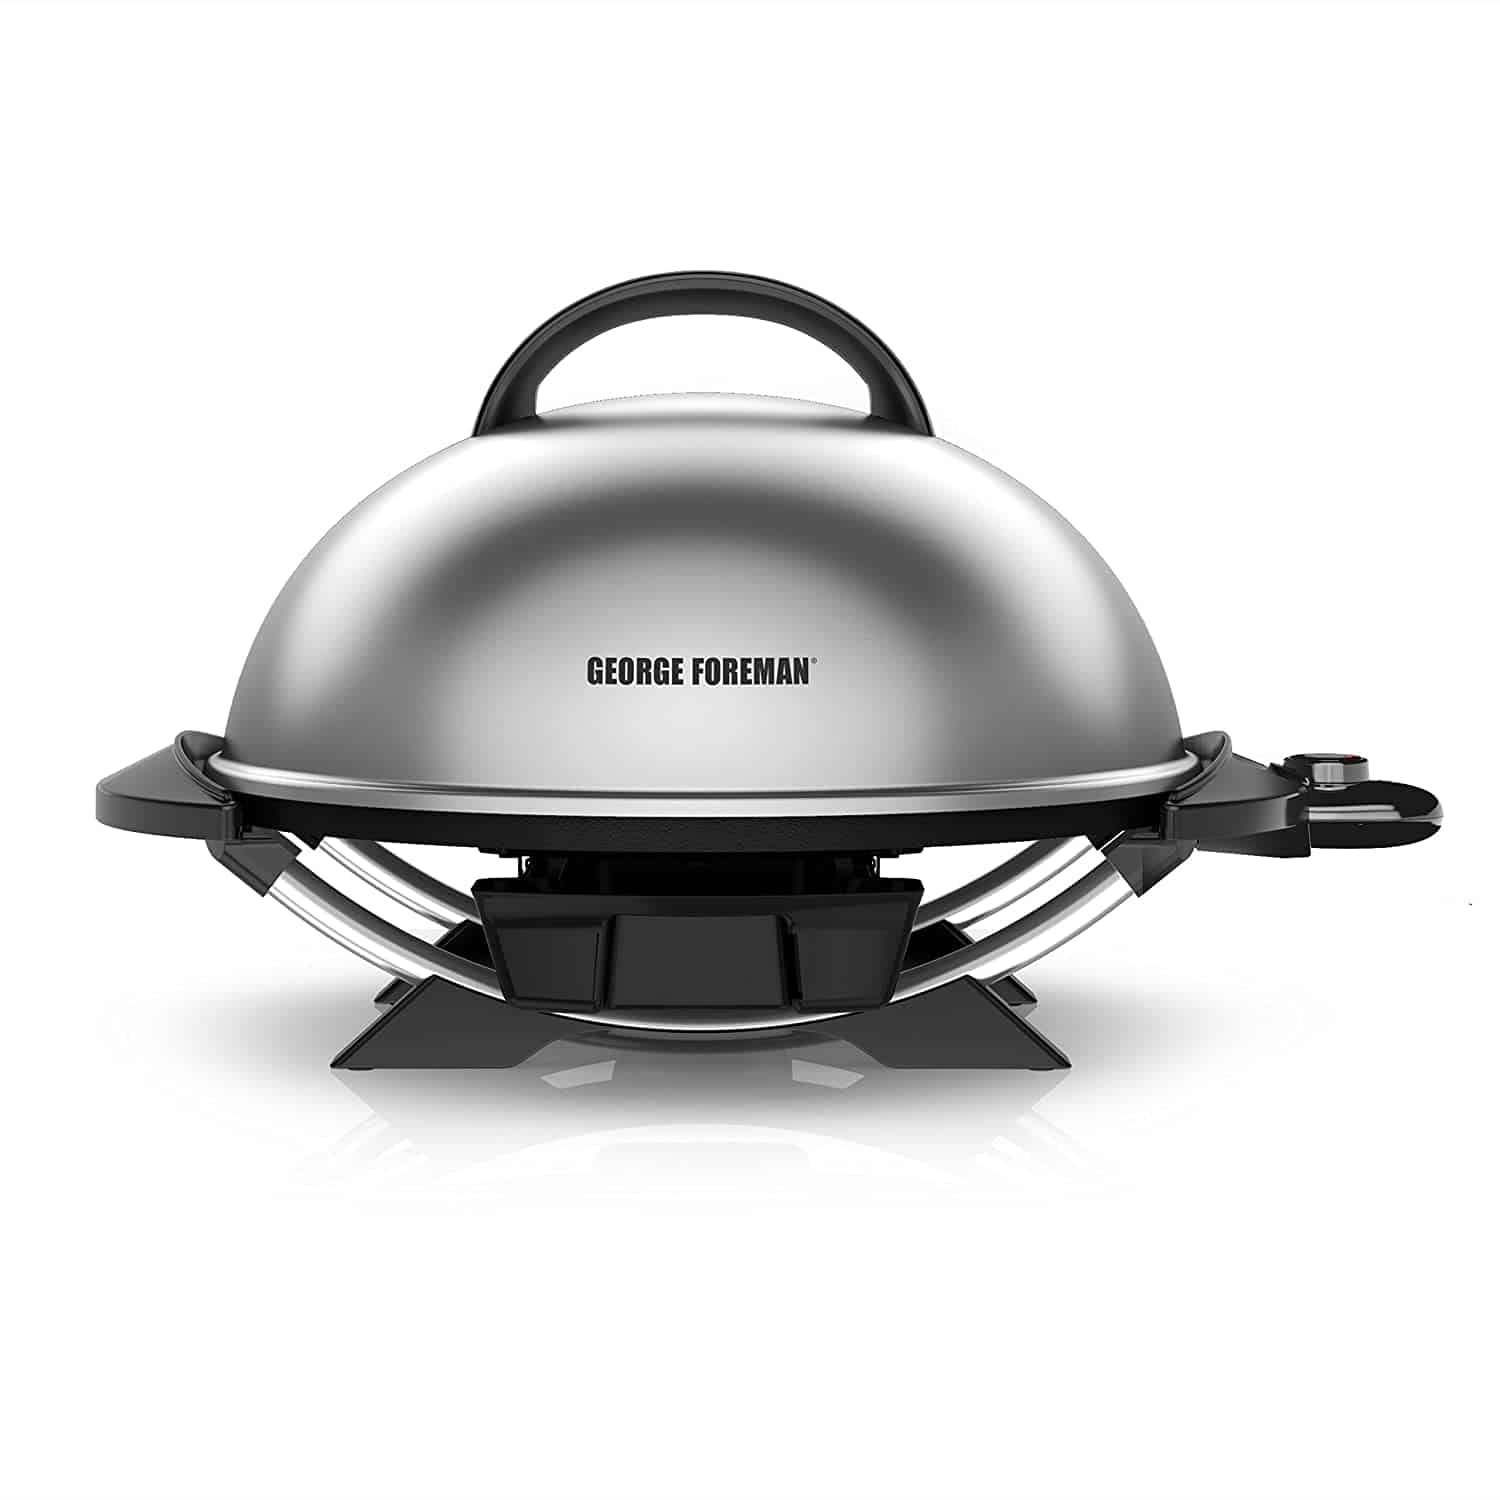 George Foreman 15-Serving Indoor/Outdoor Electric Grill GFO240S